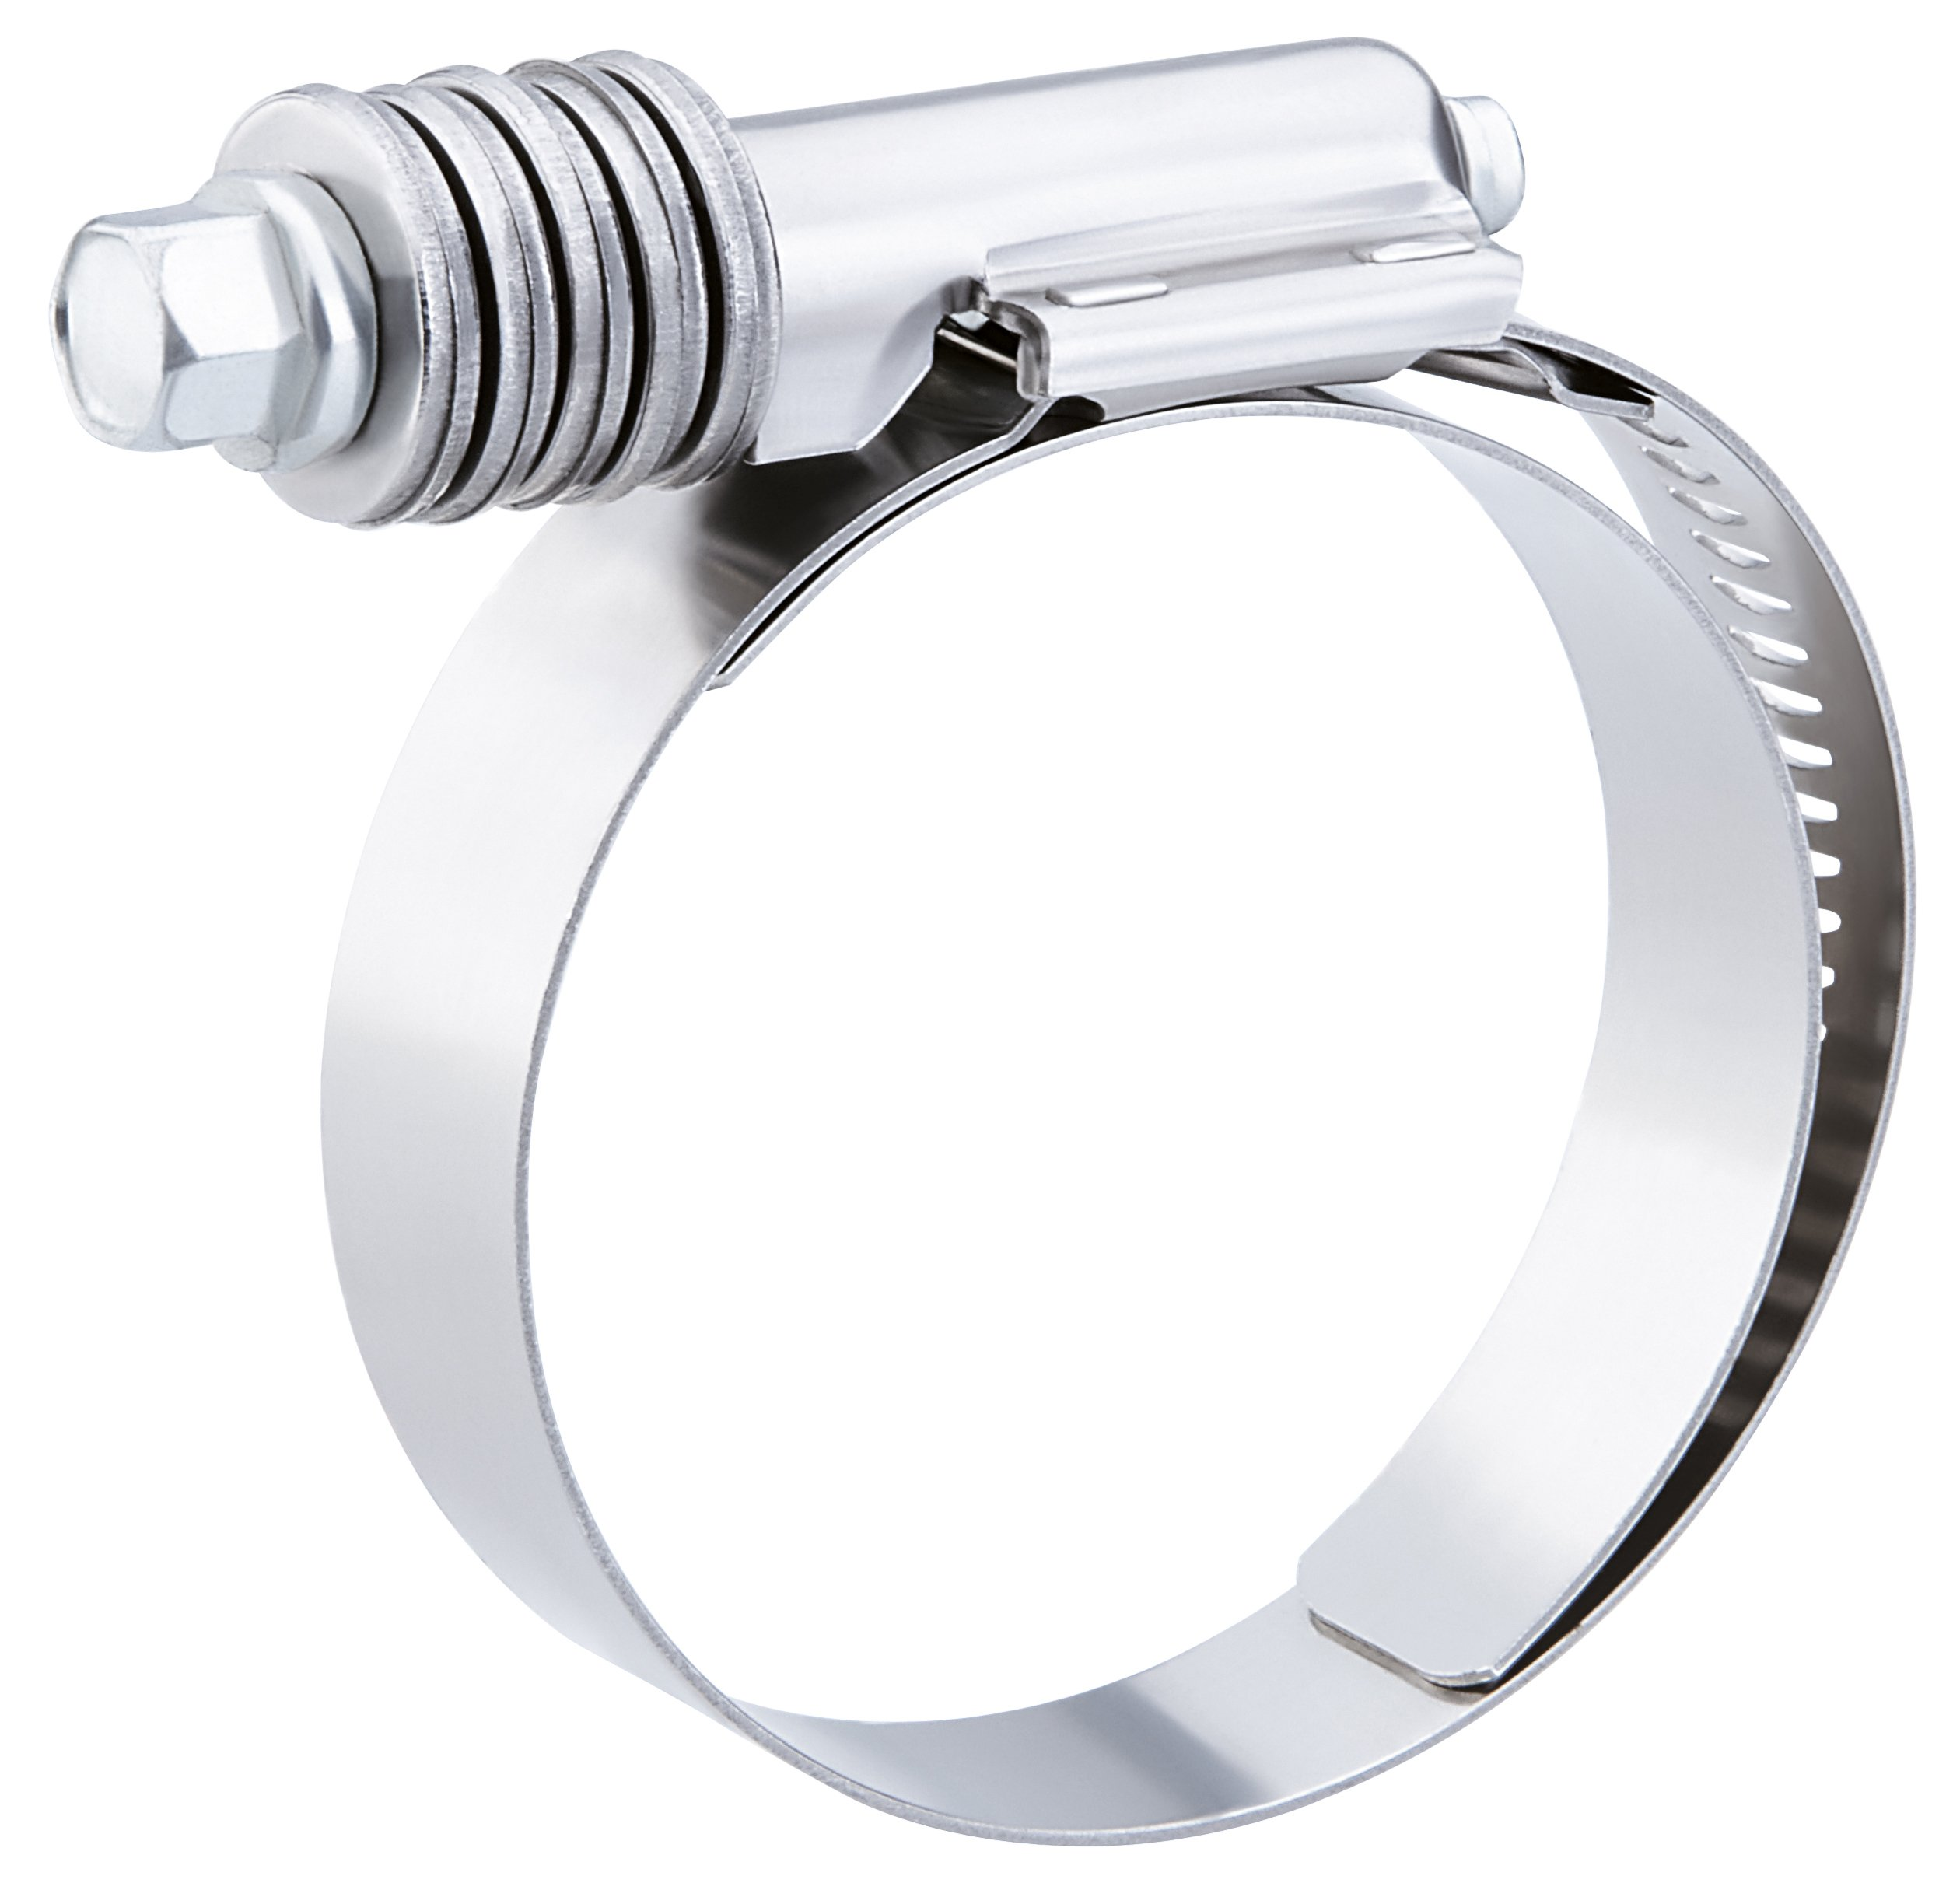 Breeze Constant-Torque Stainless Steel Hose Clamp, Worm-Drive, SAE Size 24, 1-1/16'' to 2'' Diameter Range, 9/16'' Band Width (Pack of 10)